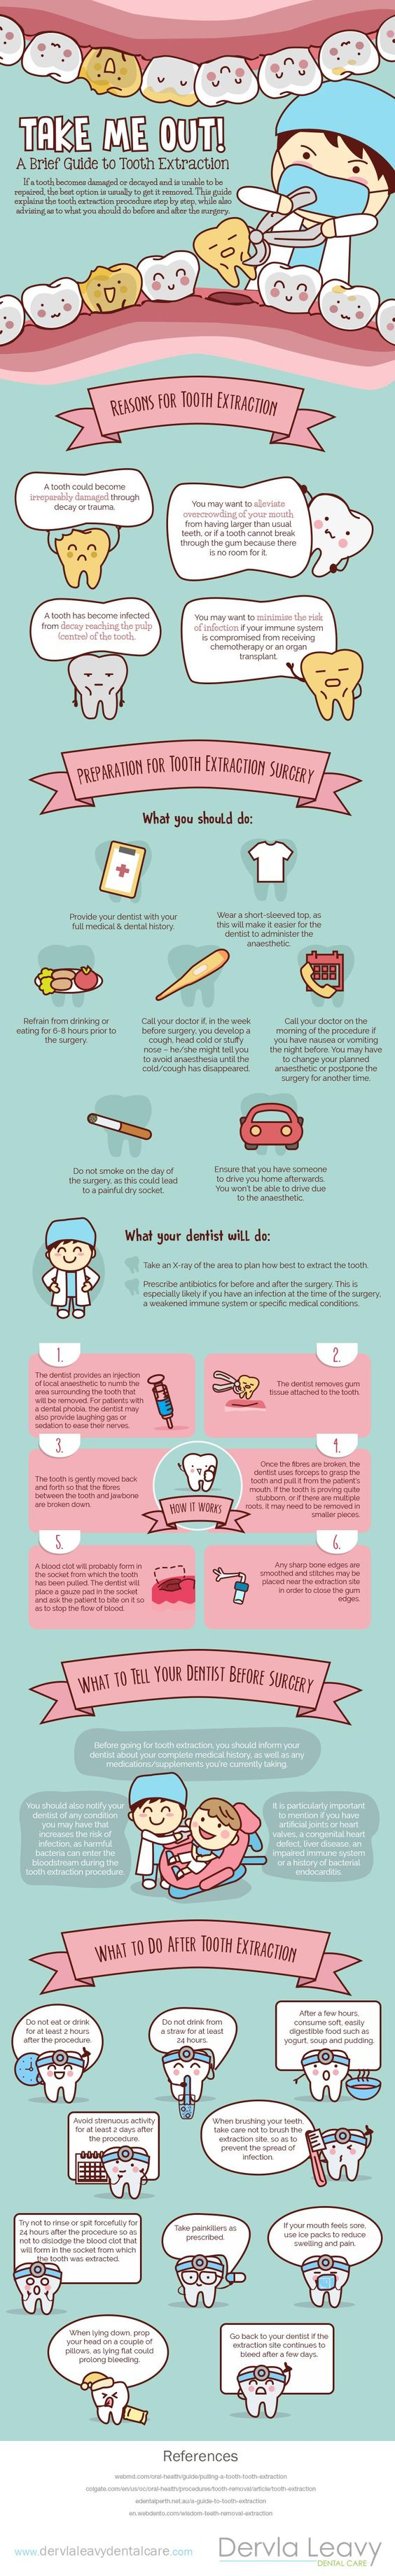 info graphic teeth removal - Take Me Out! A Brief Guide to Tooth Extraction – Infographic